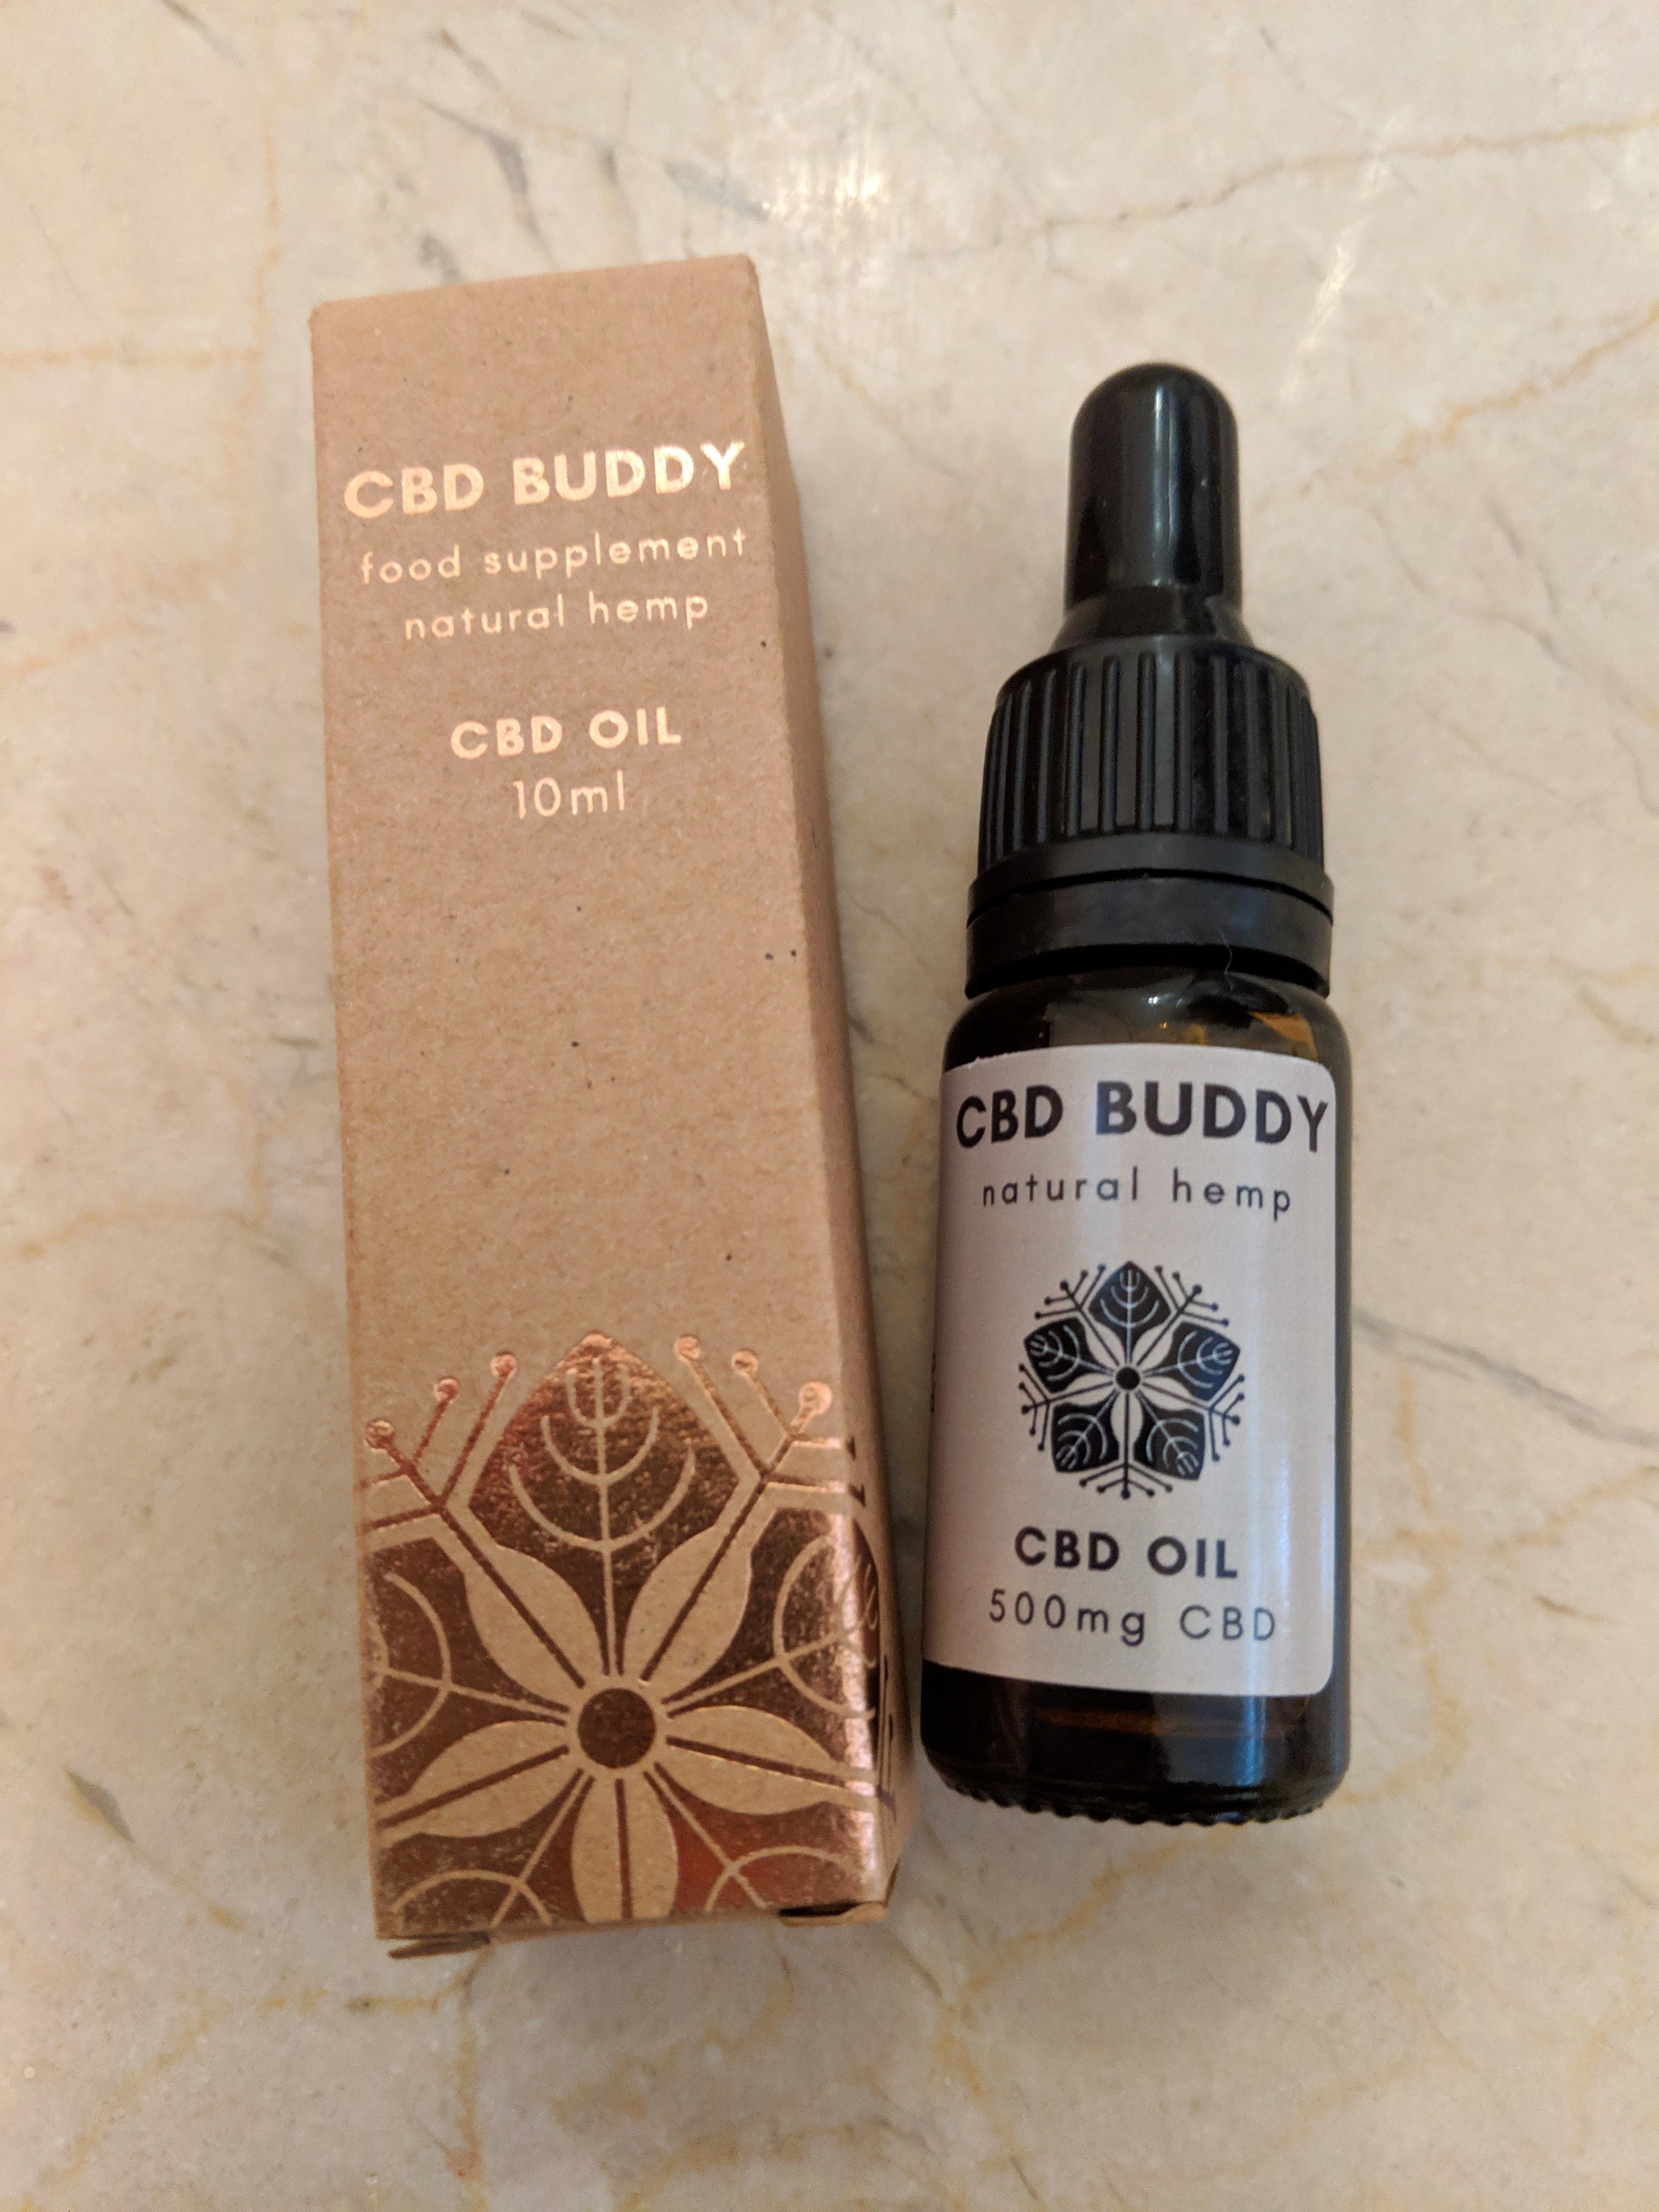 CBD Buddy CBD oil